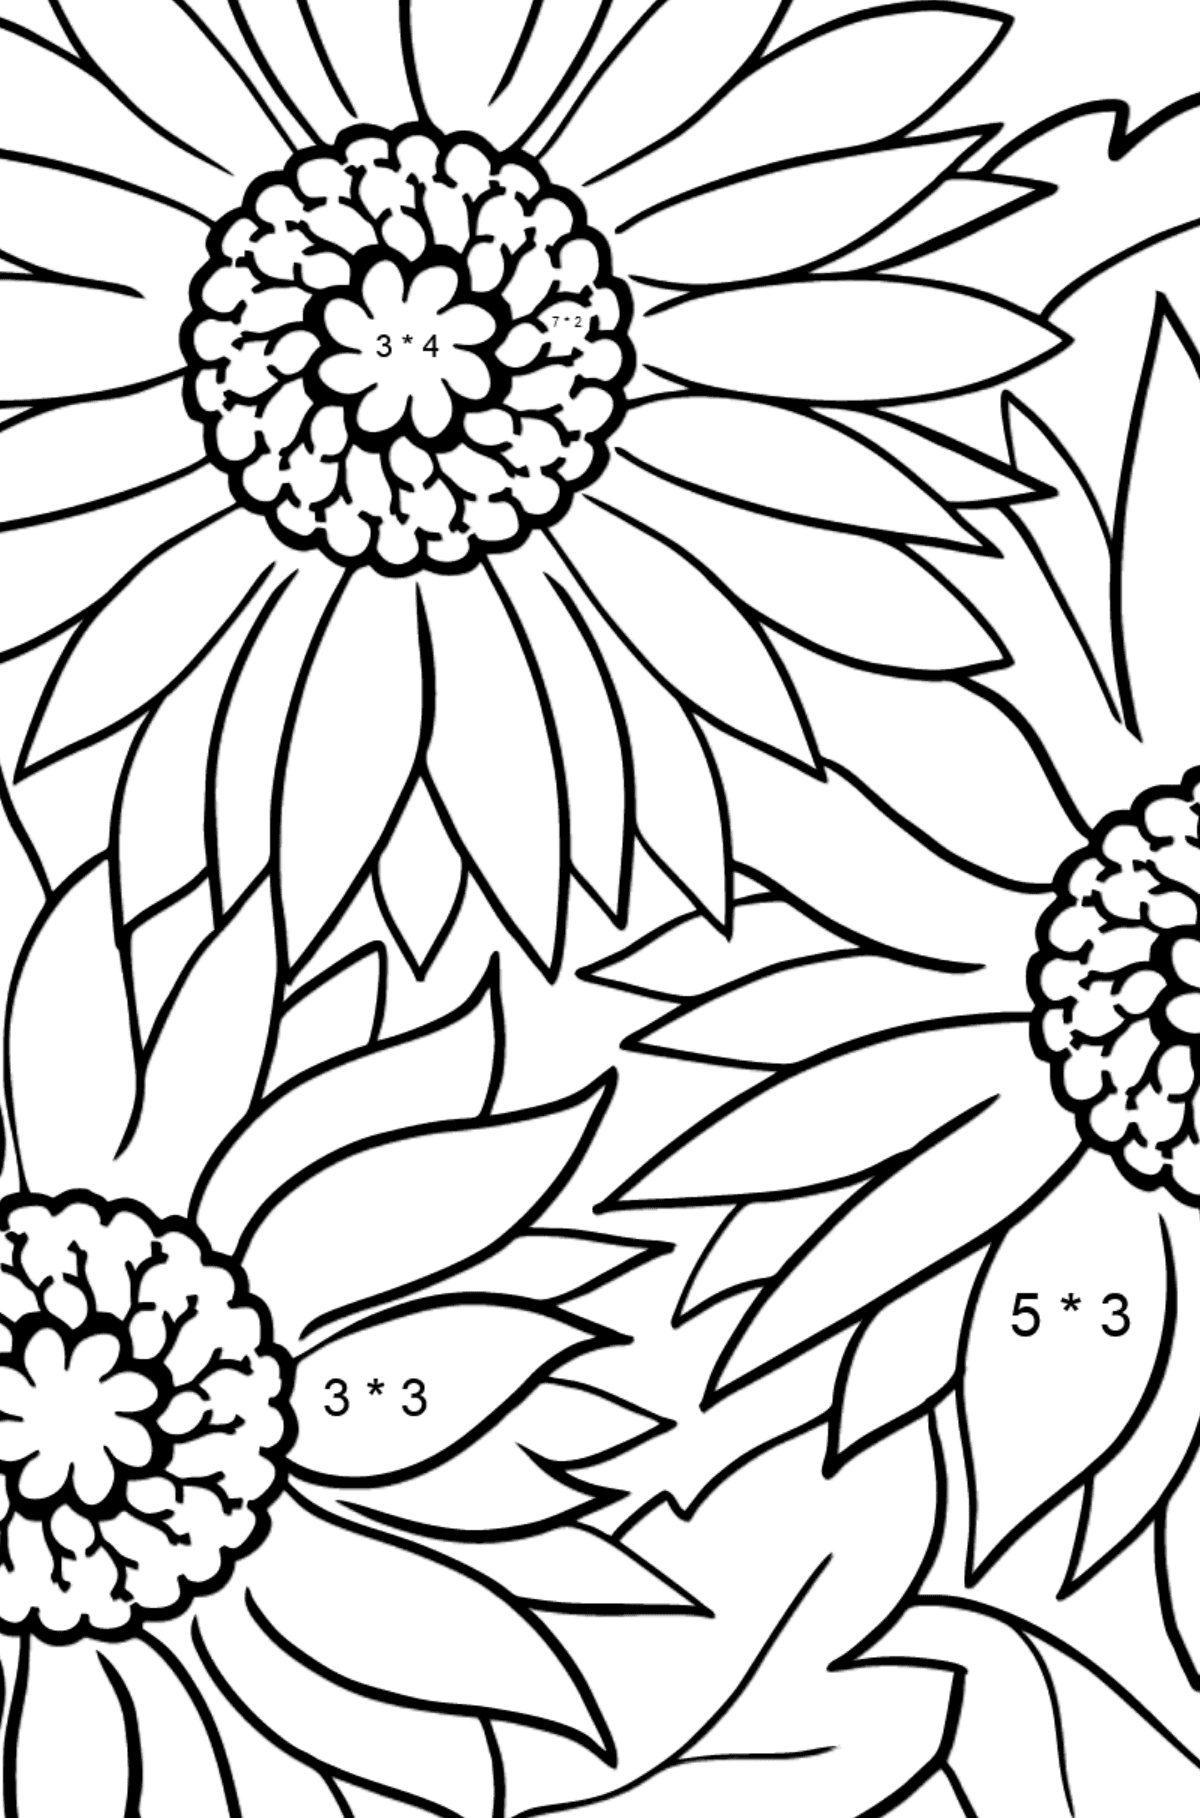 Coloring Flowers for the Youngest Children - Pink Gerbera - Math Coloring - Multiplication for Kids